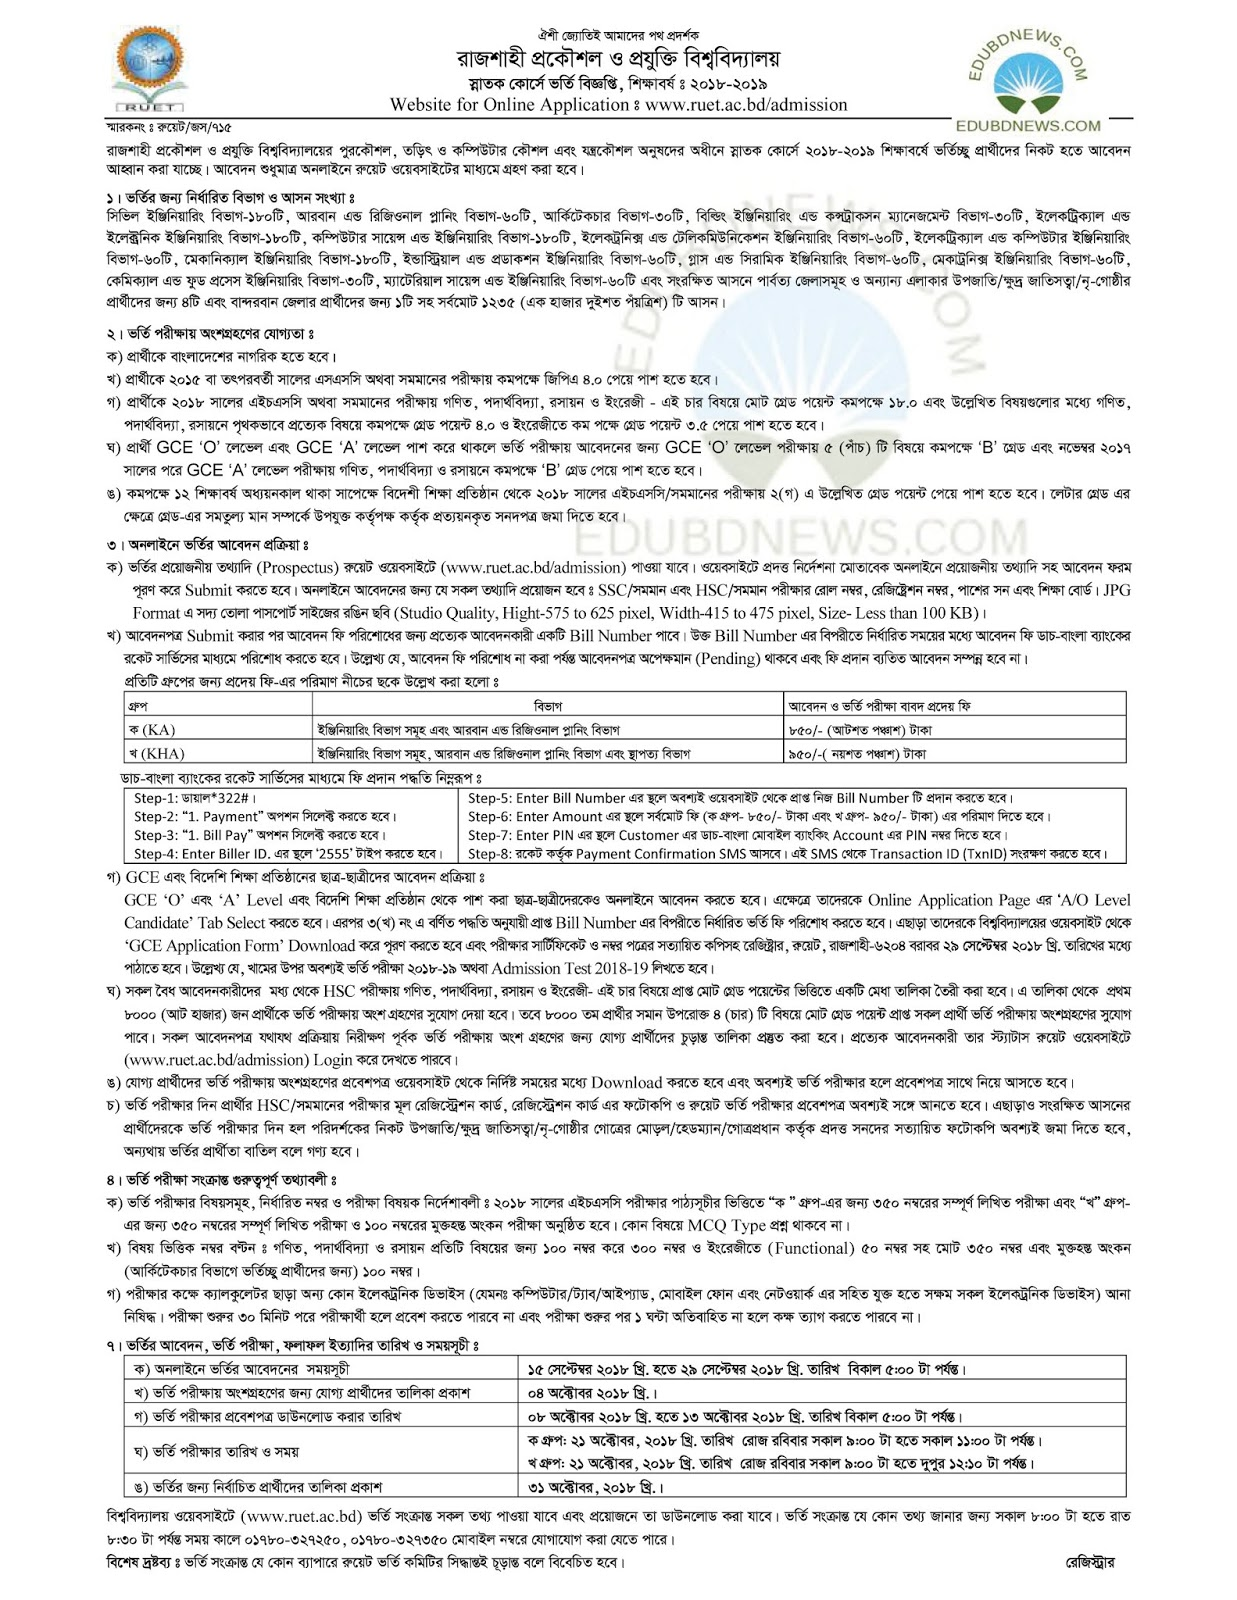 RUET Rajshahi Engineering & Technology University Admission Test Circular 2018-19